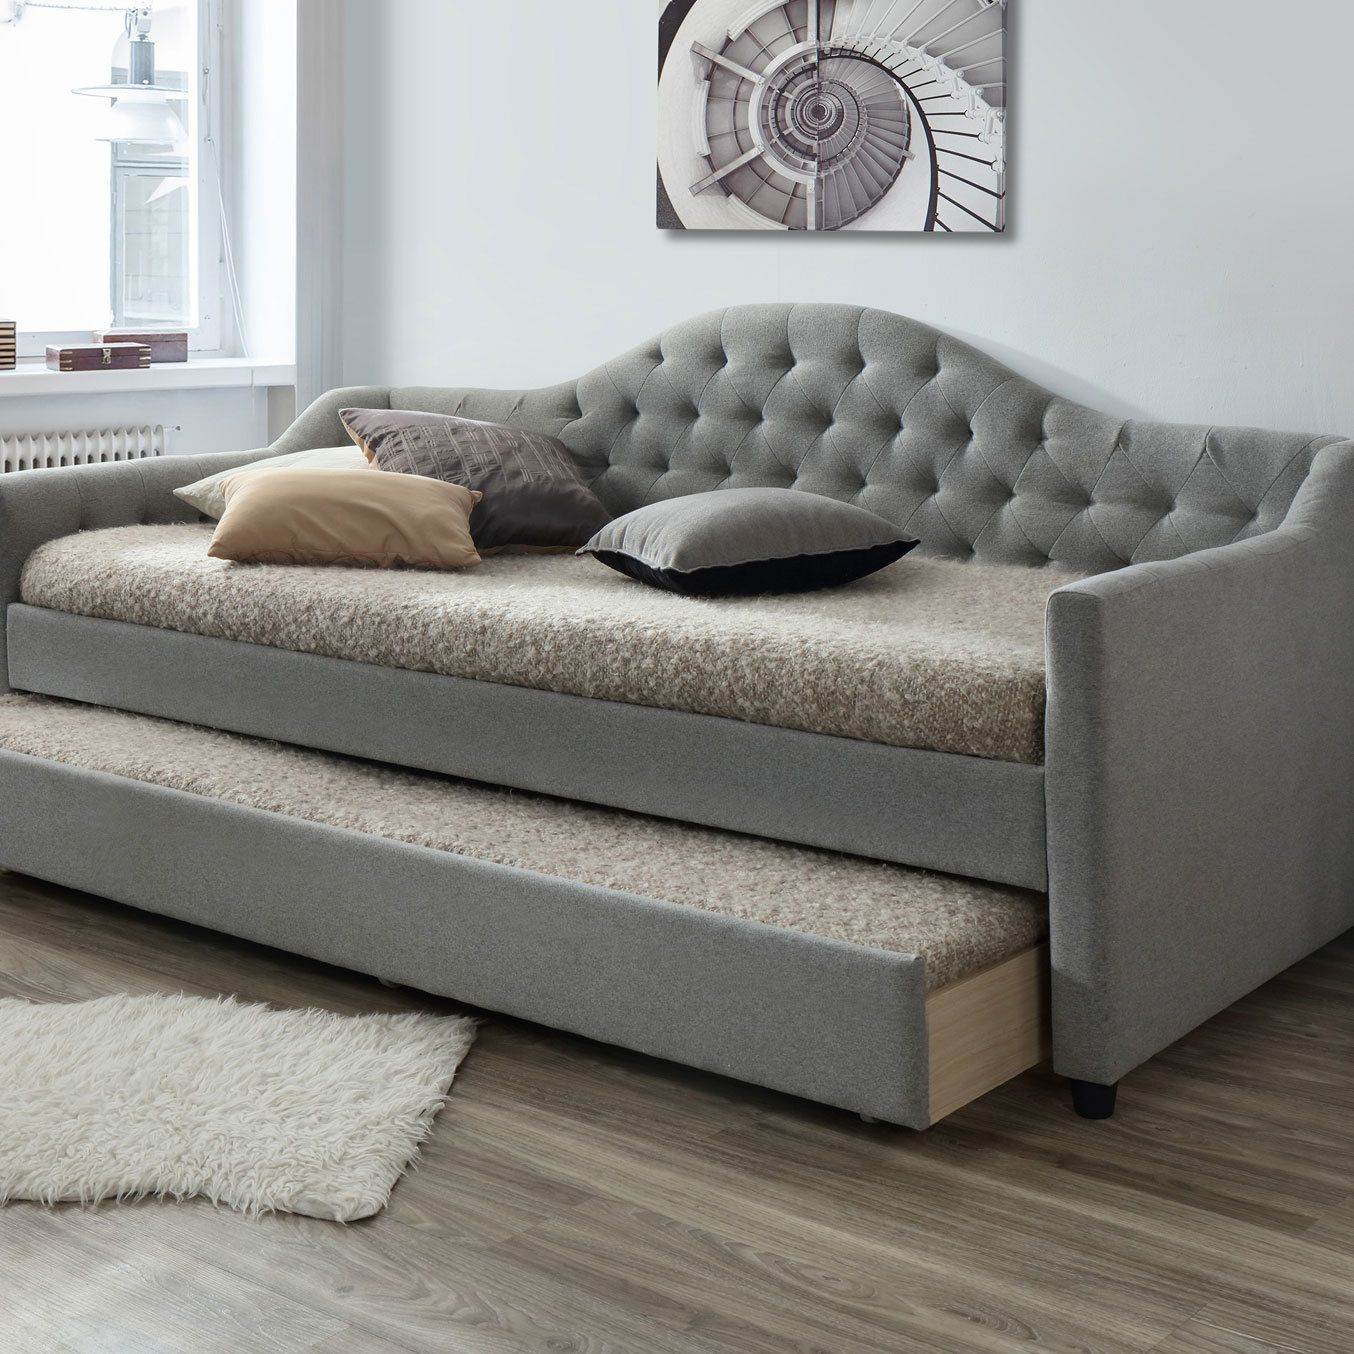 Best Grey York Single Day Bed Frame With Trundle In 2019 Day 400 x 300